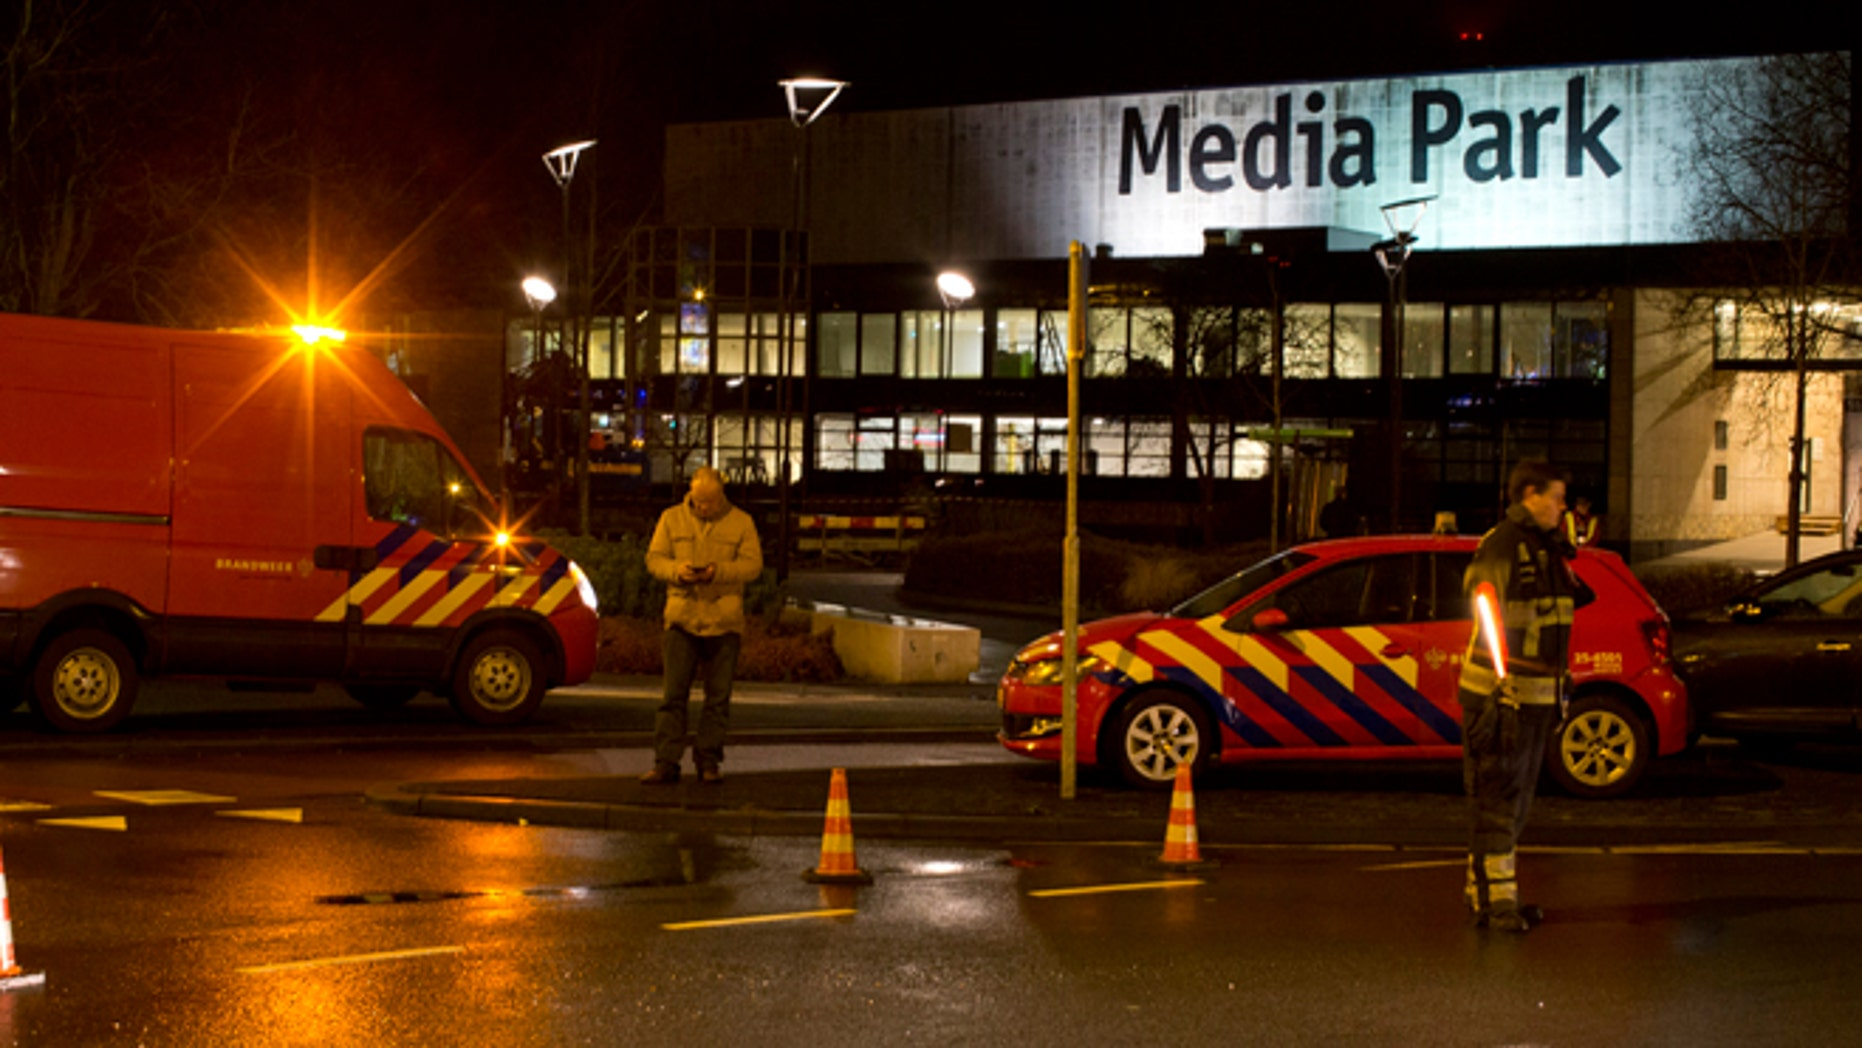 Jan. 29, 2015: Security forces are seen outside the Media Park in Hilversum, Netherlands.